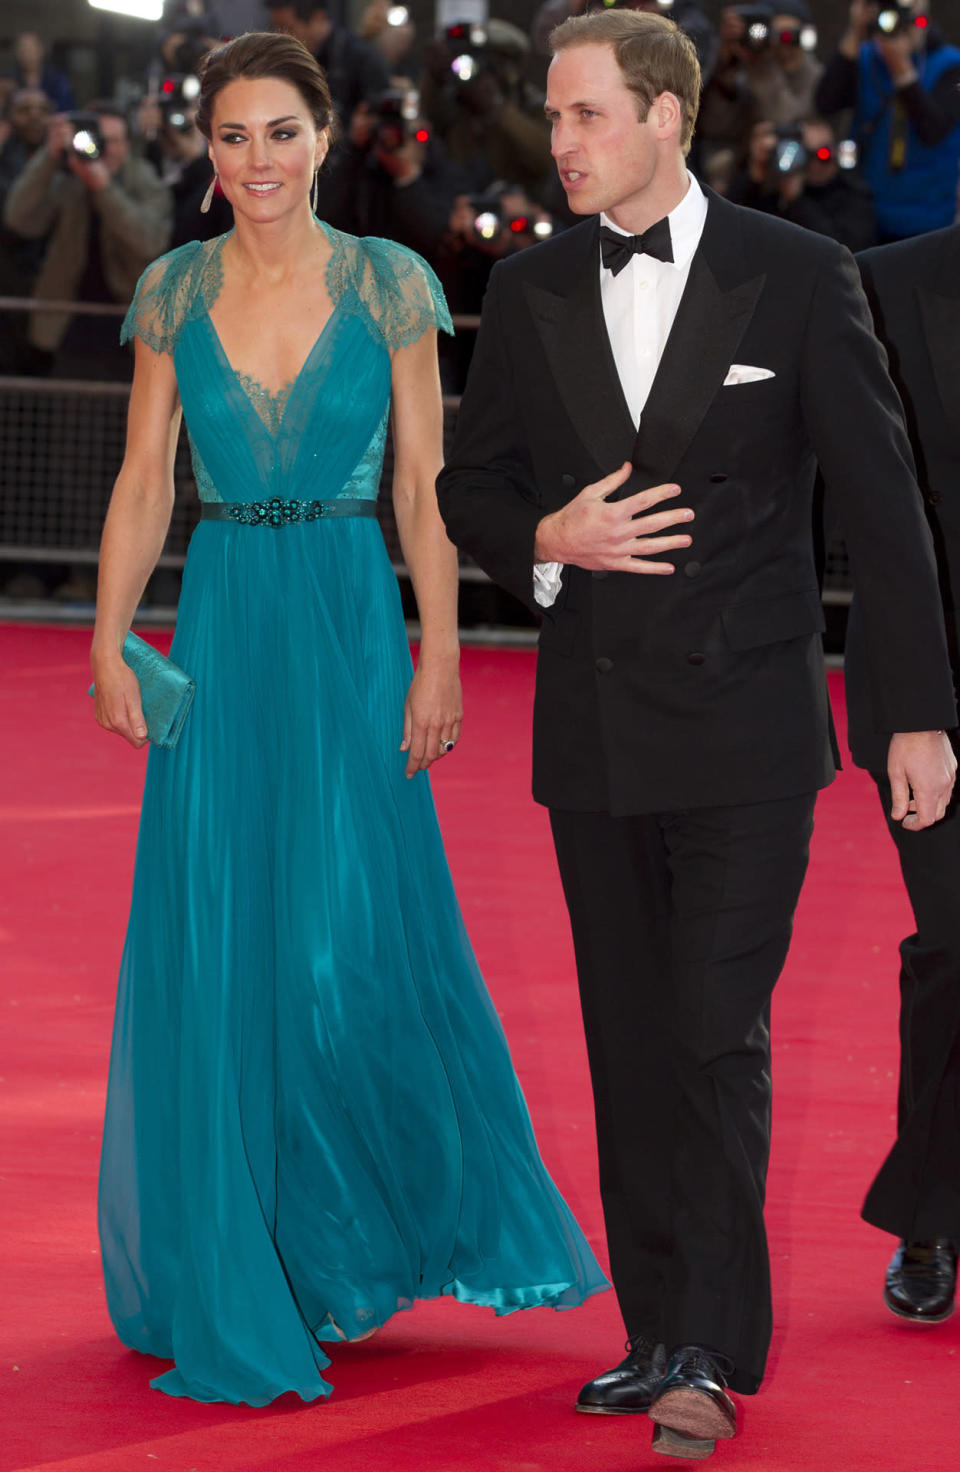 <p>Kate stunned in an emerald chiffon Jenny Packham gown with a lace back for a gala dinner. She carried a matching clutch and finished with glittering Jimmy Choo sandals. </p><p><i>[Photo: PA]</i></p>